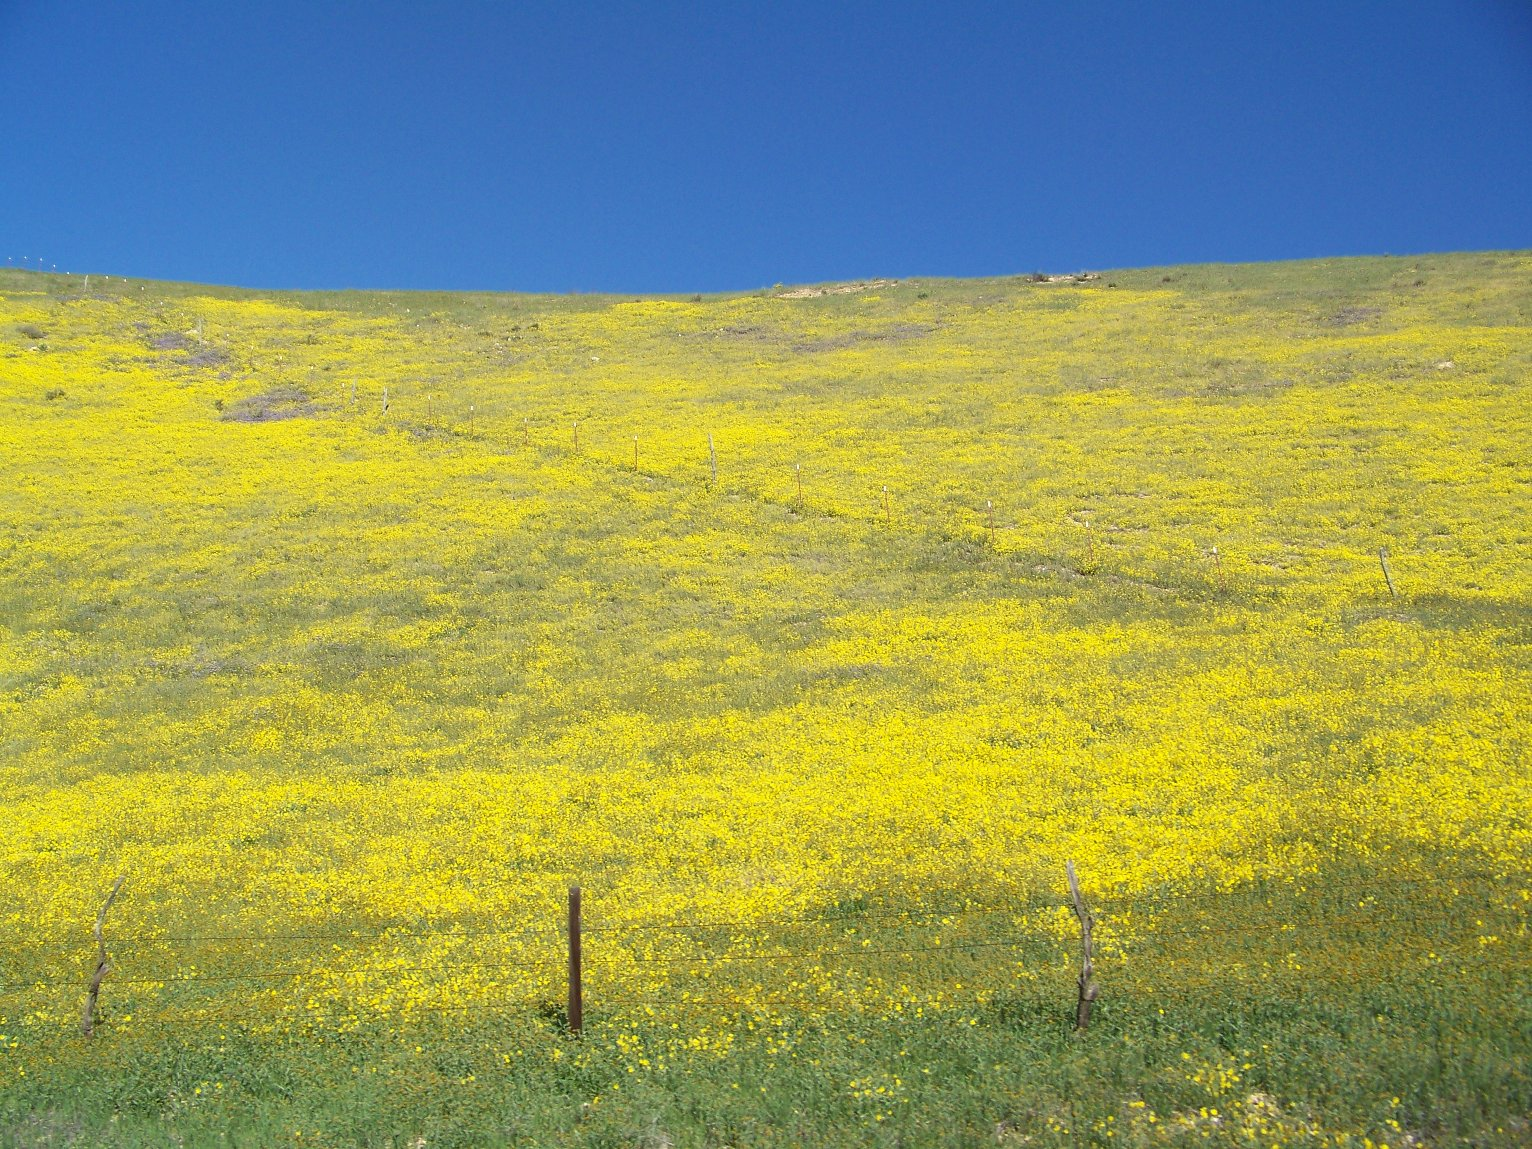 the carrizo plain